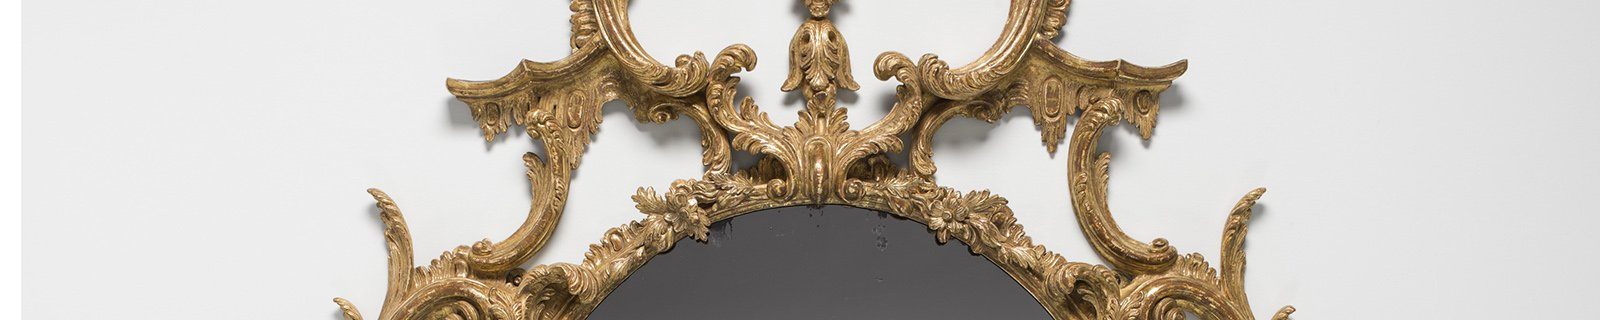 A cropped view of a mirror with an elaborate gold frame with swirls.